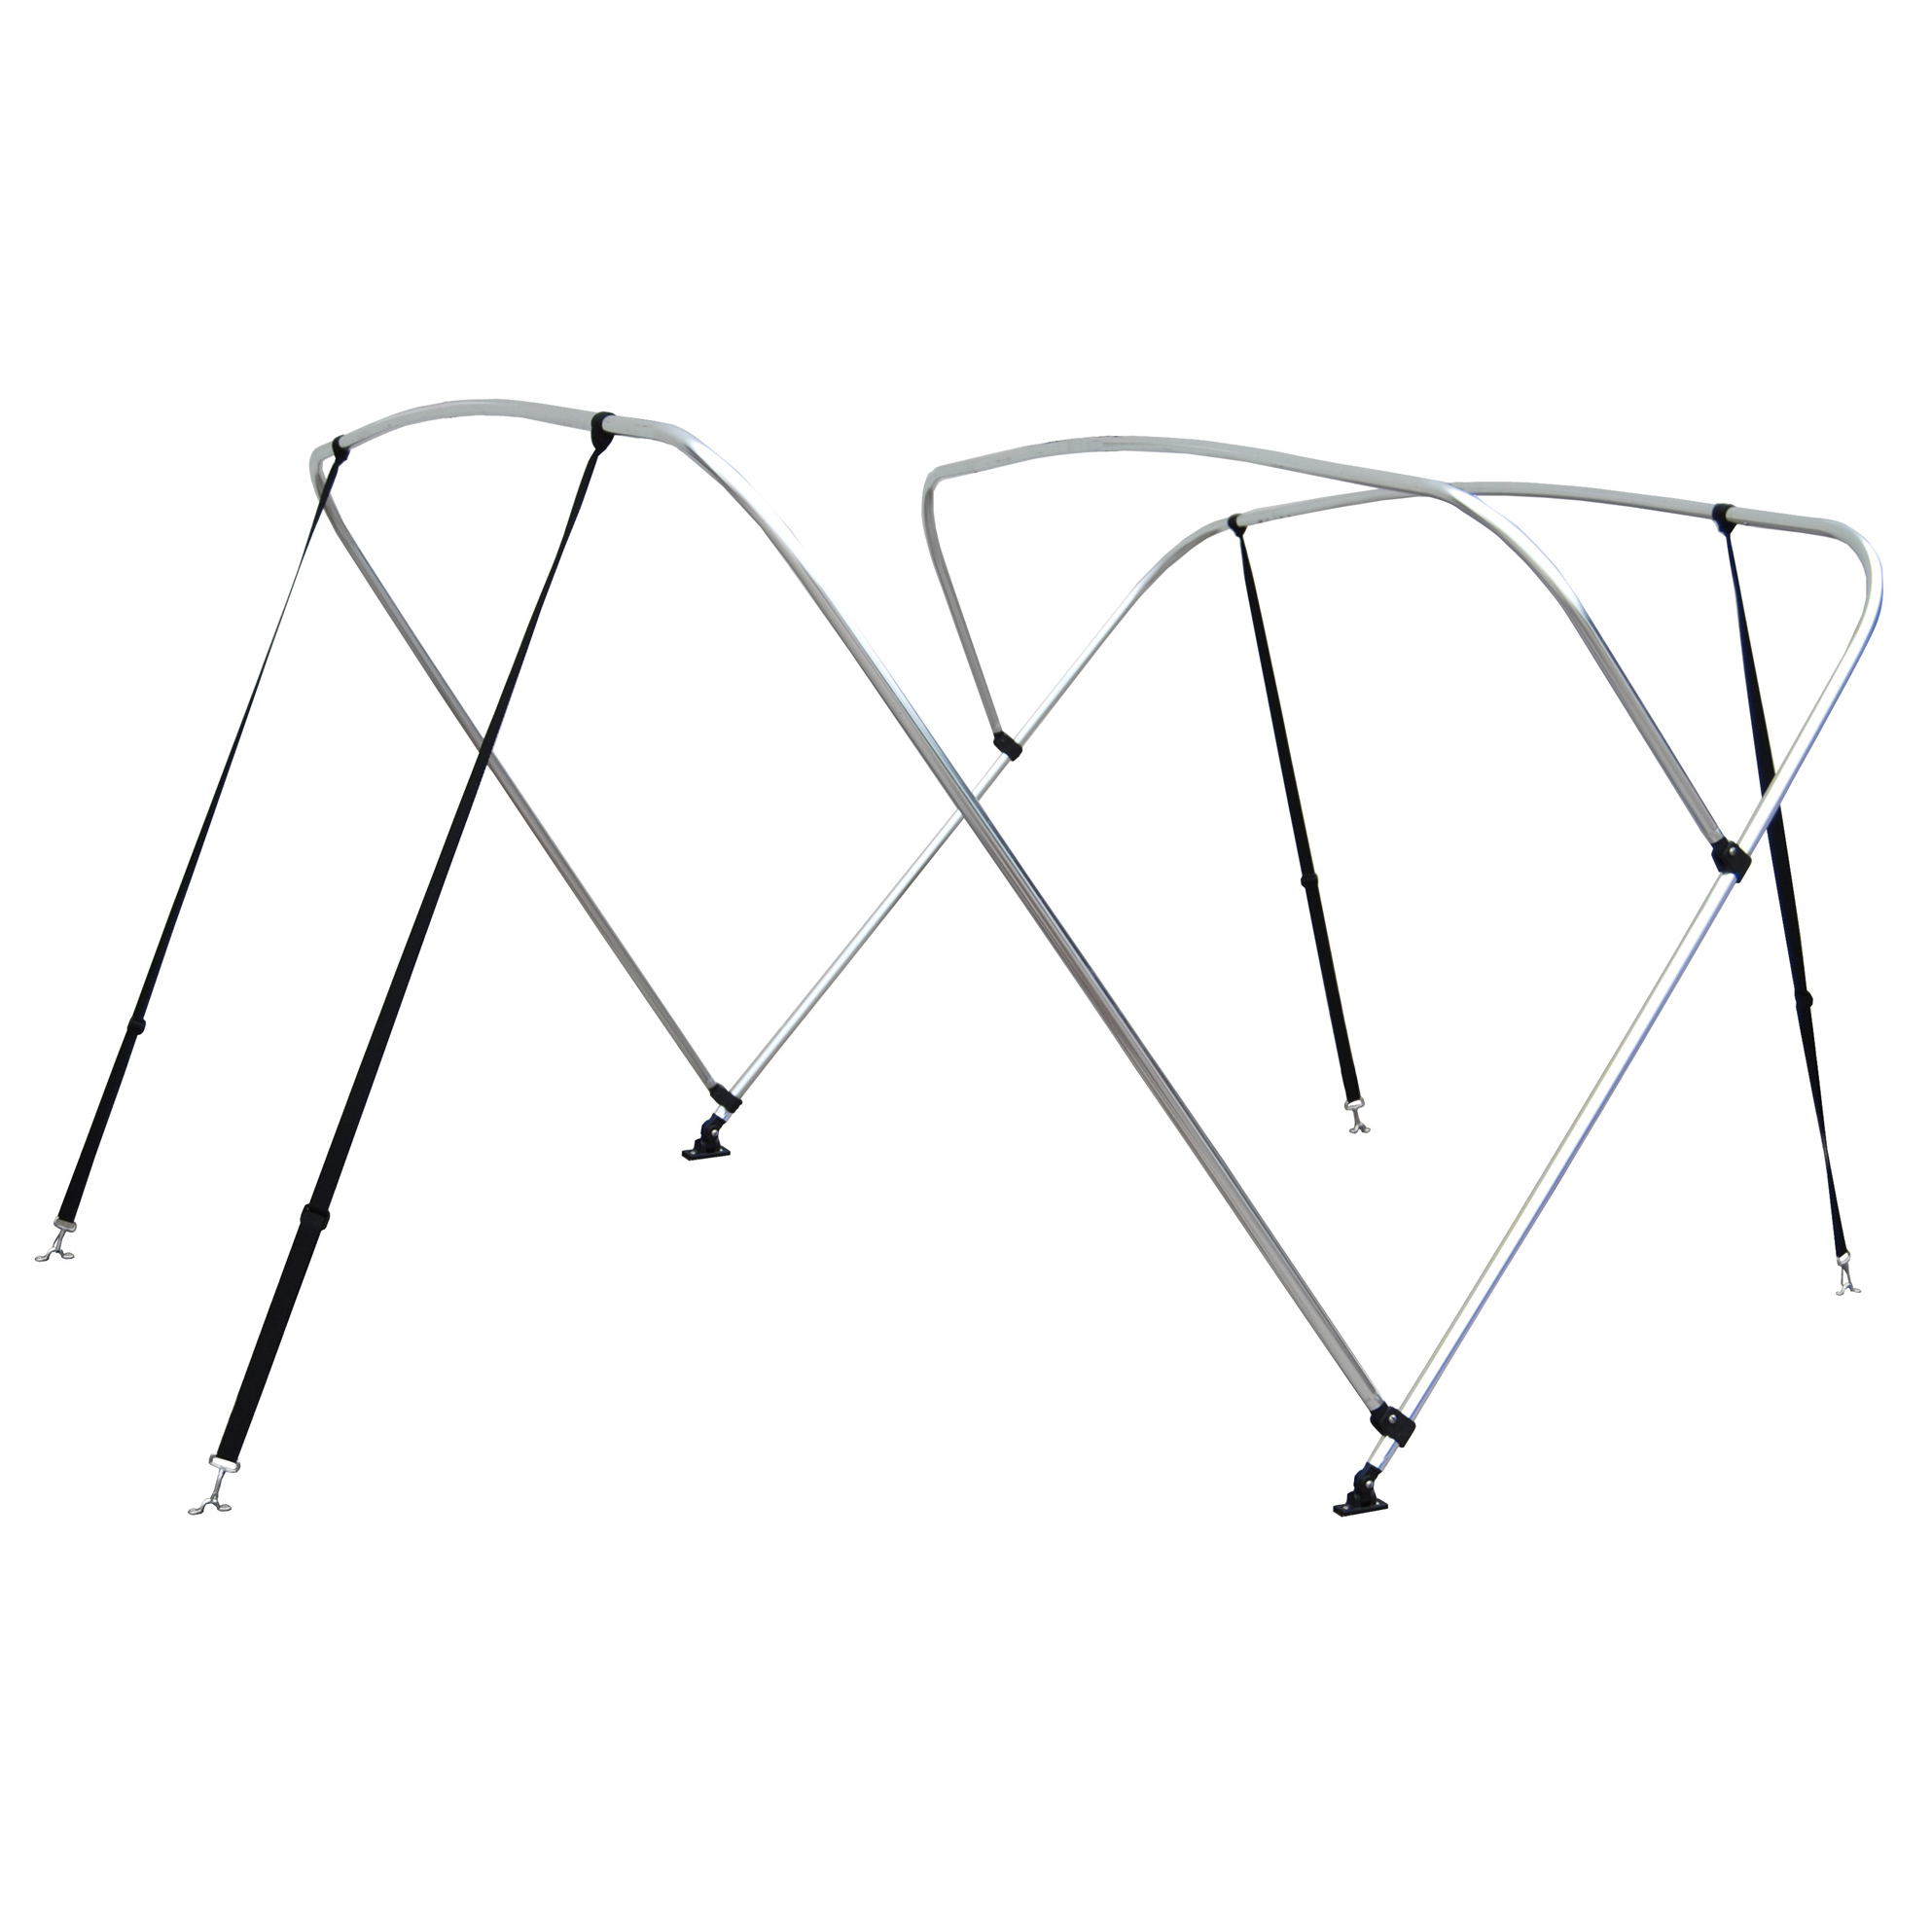 Shademate White Vinyl Stainless 4-Bow Bimini Top 8'L x 54''H 91''-96'' Wide